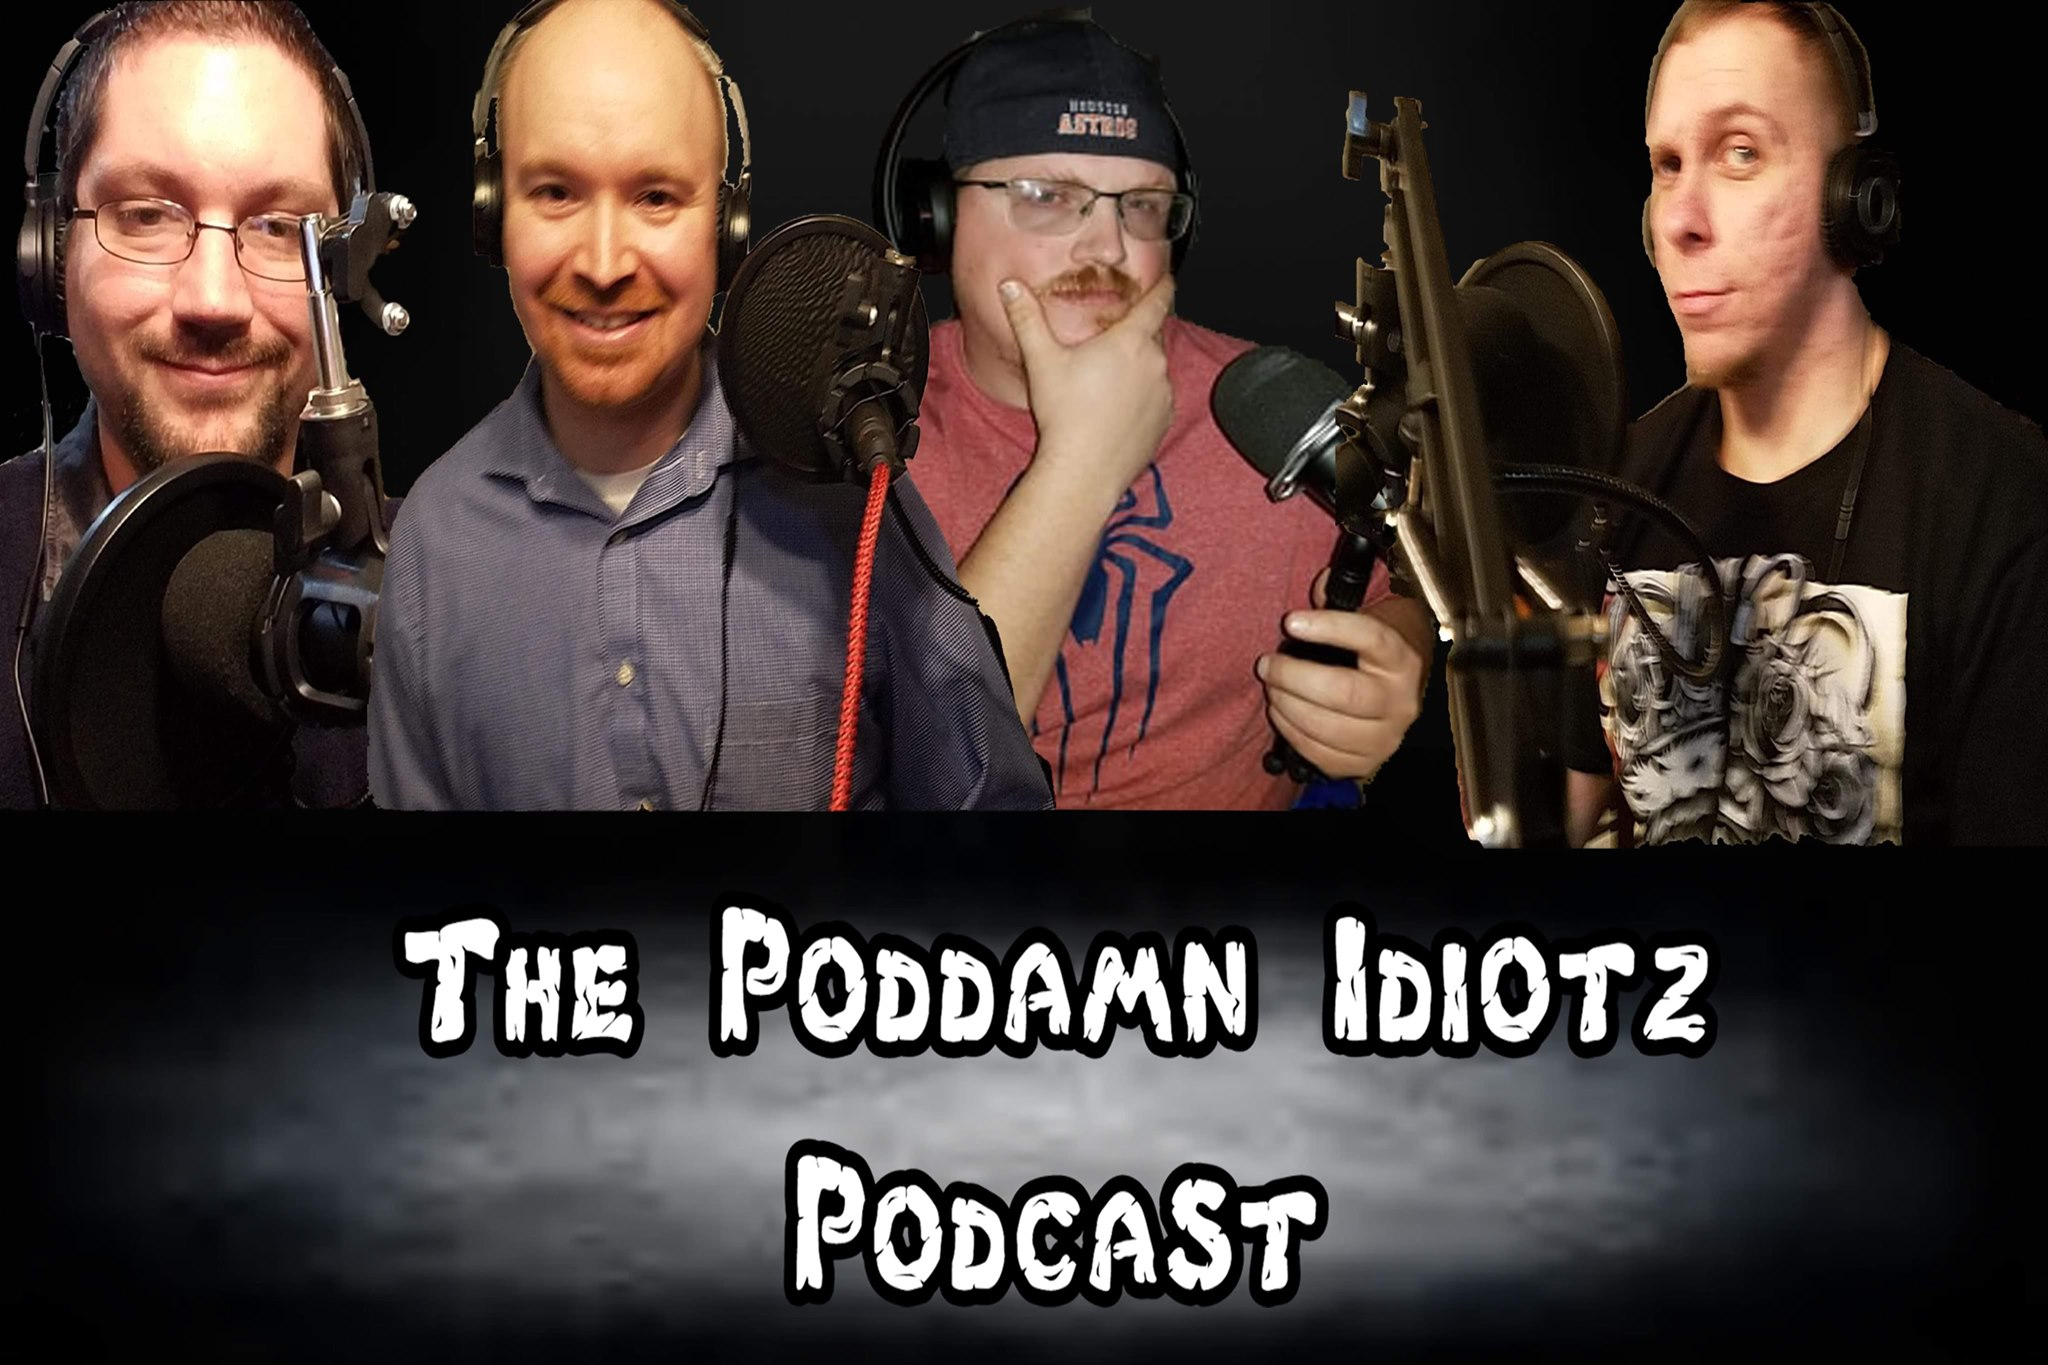 The Poddamn Idiotz Podcast